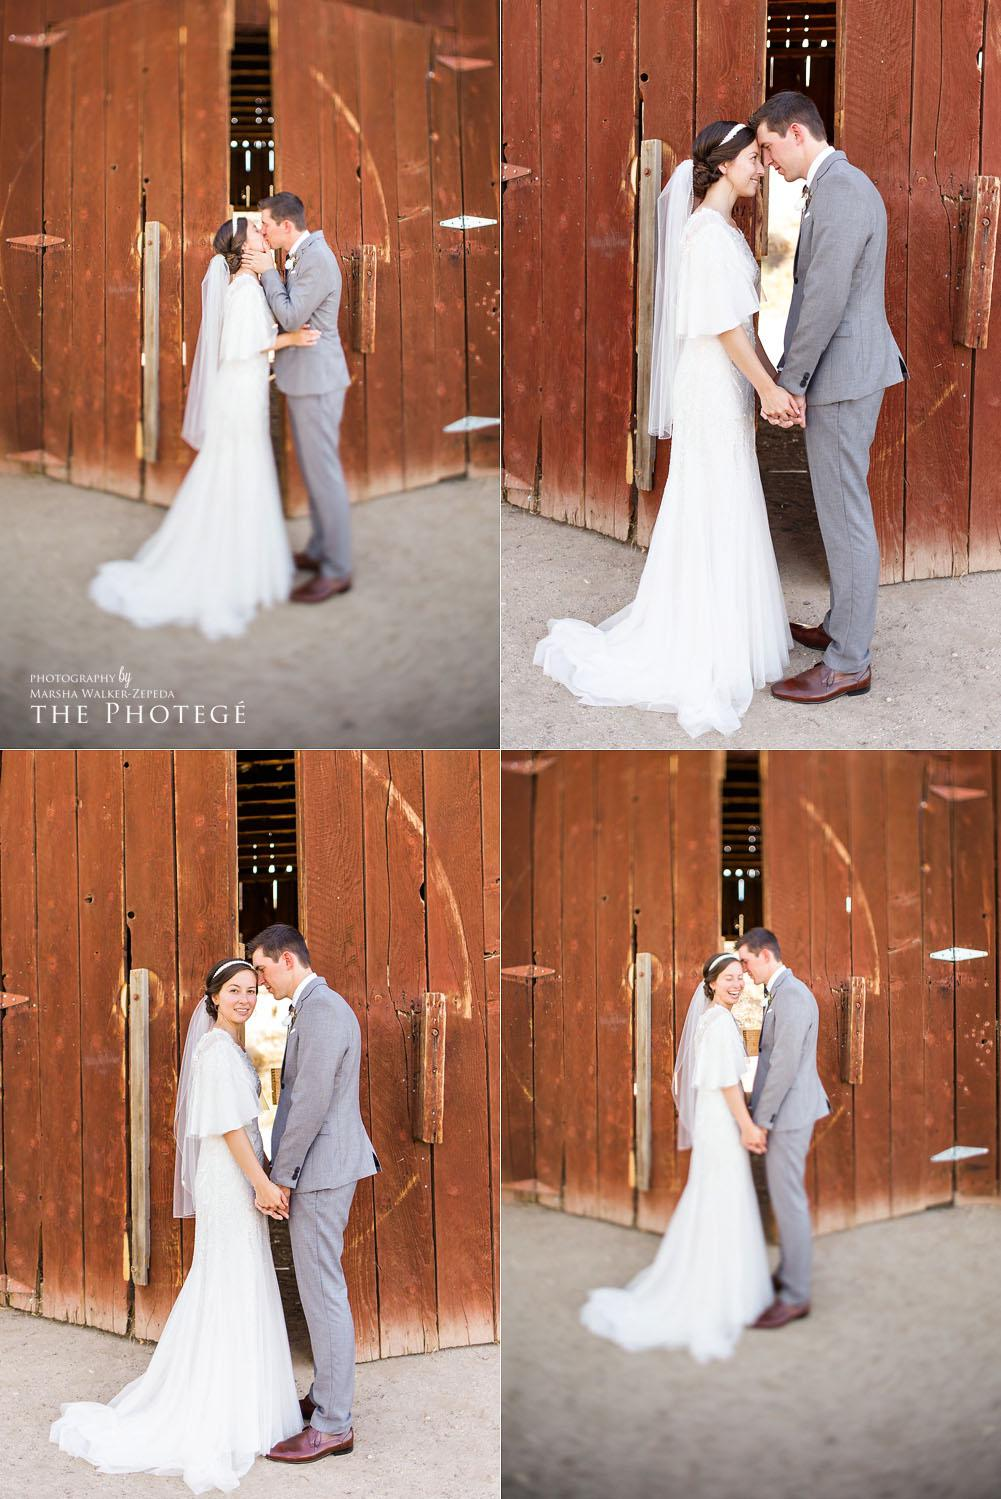 Rustic barn wedding portraits